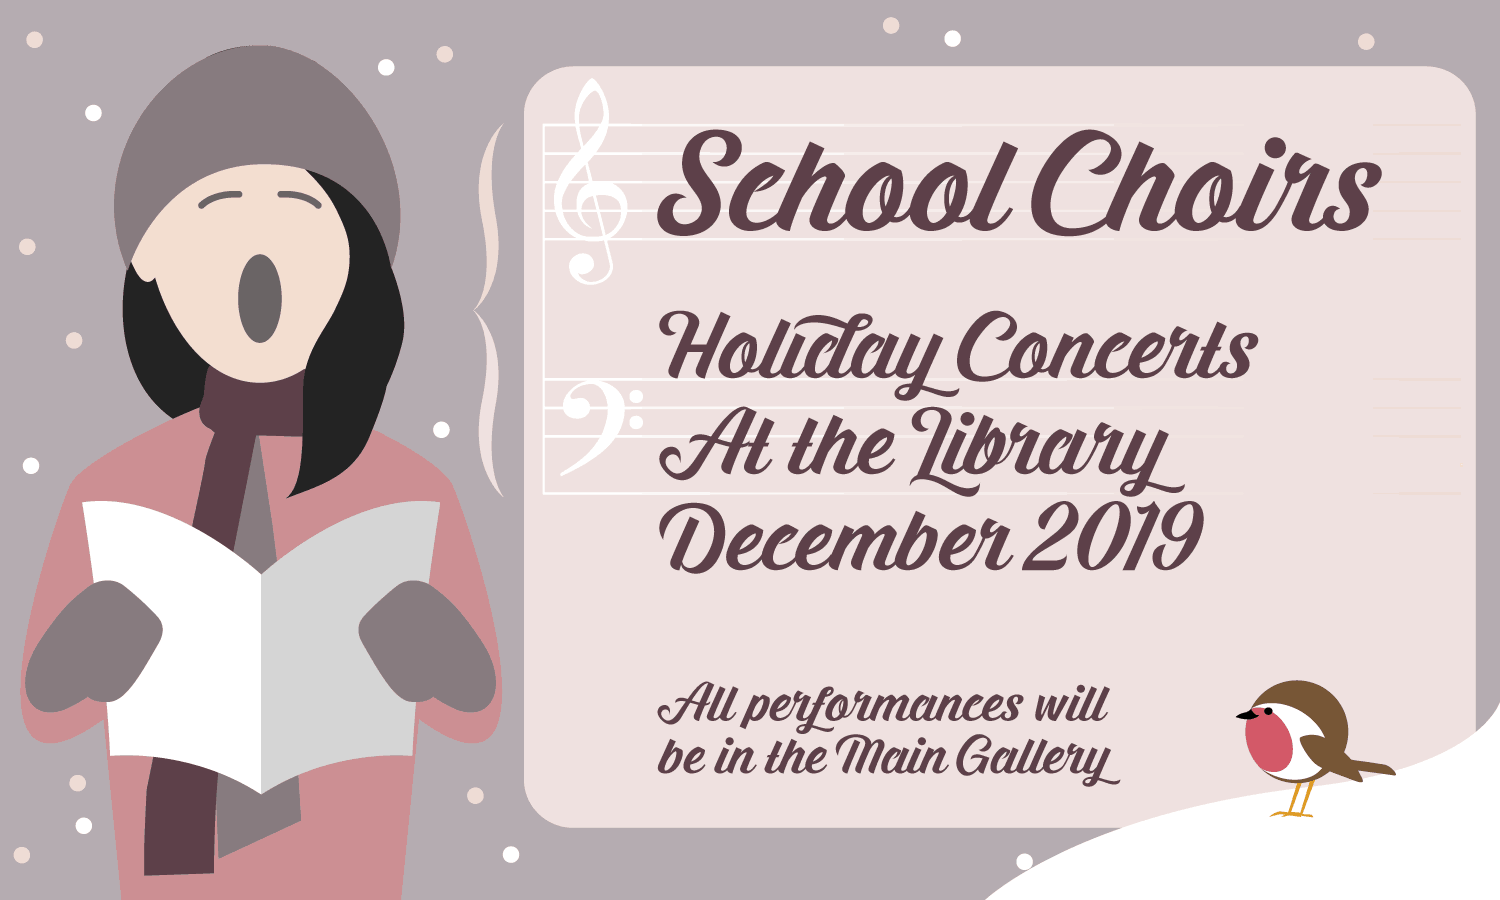 School Choirs - Holiday Concerts